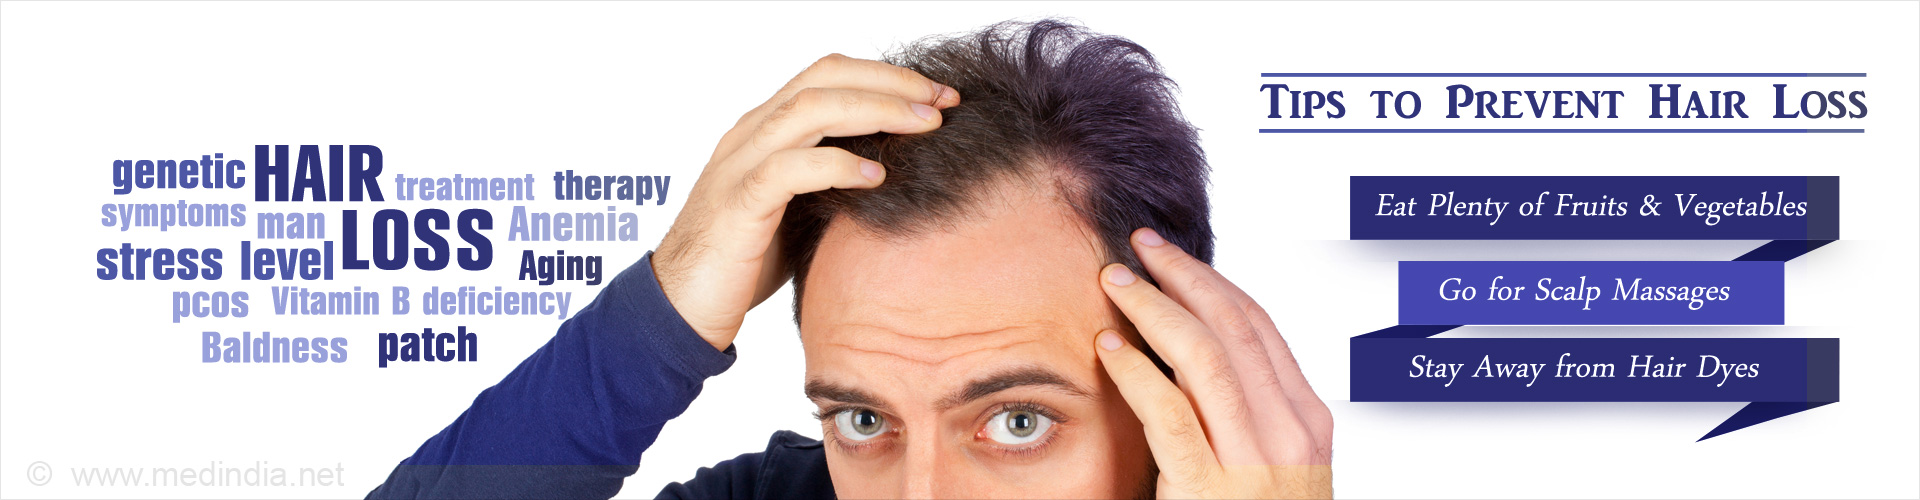 Baldness / Hairloss / Alopecia Calculator for Men